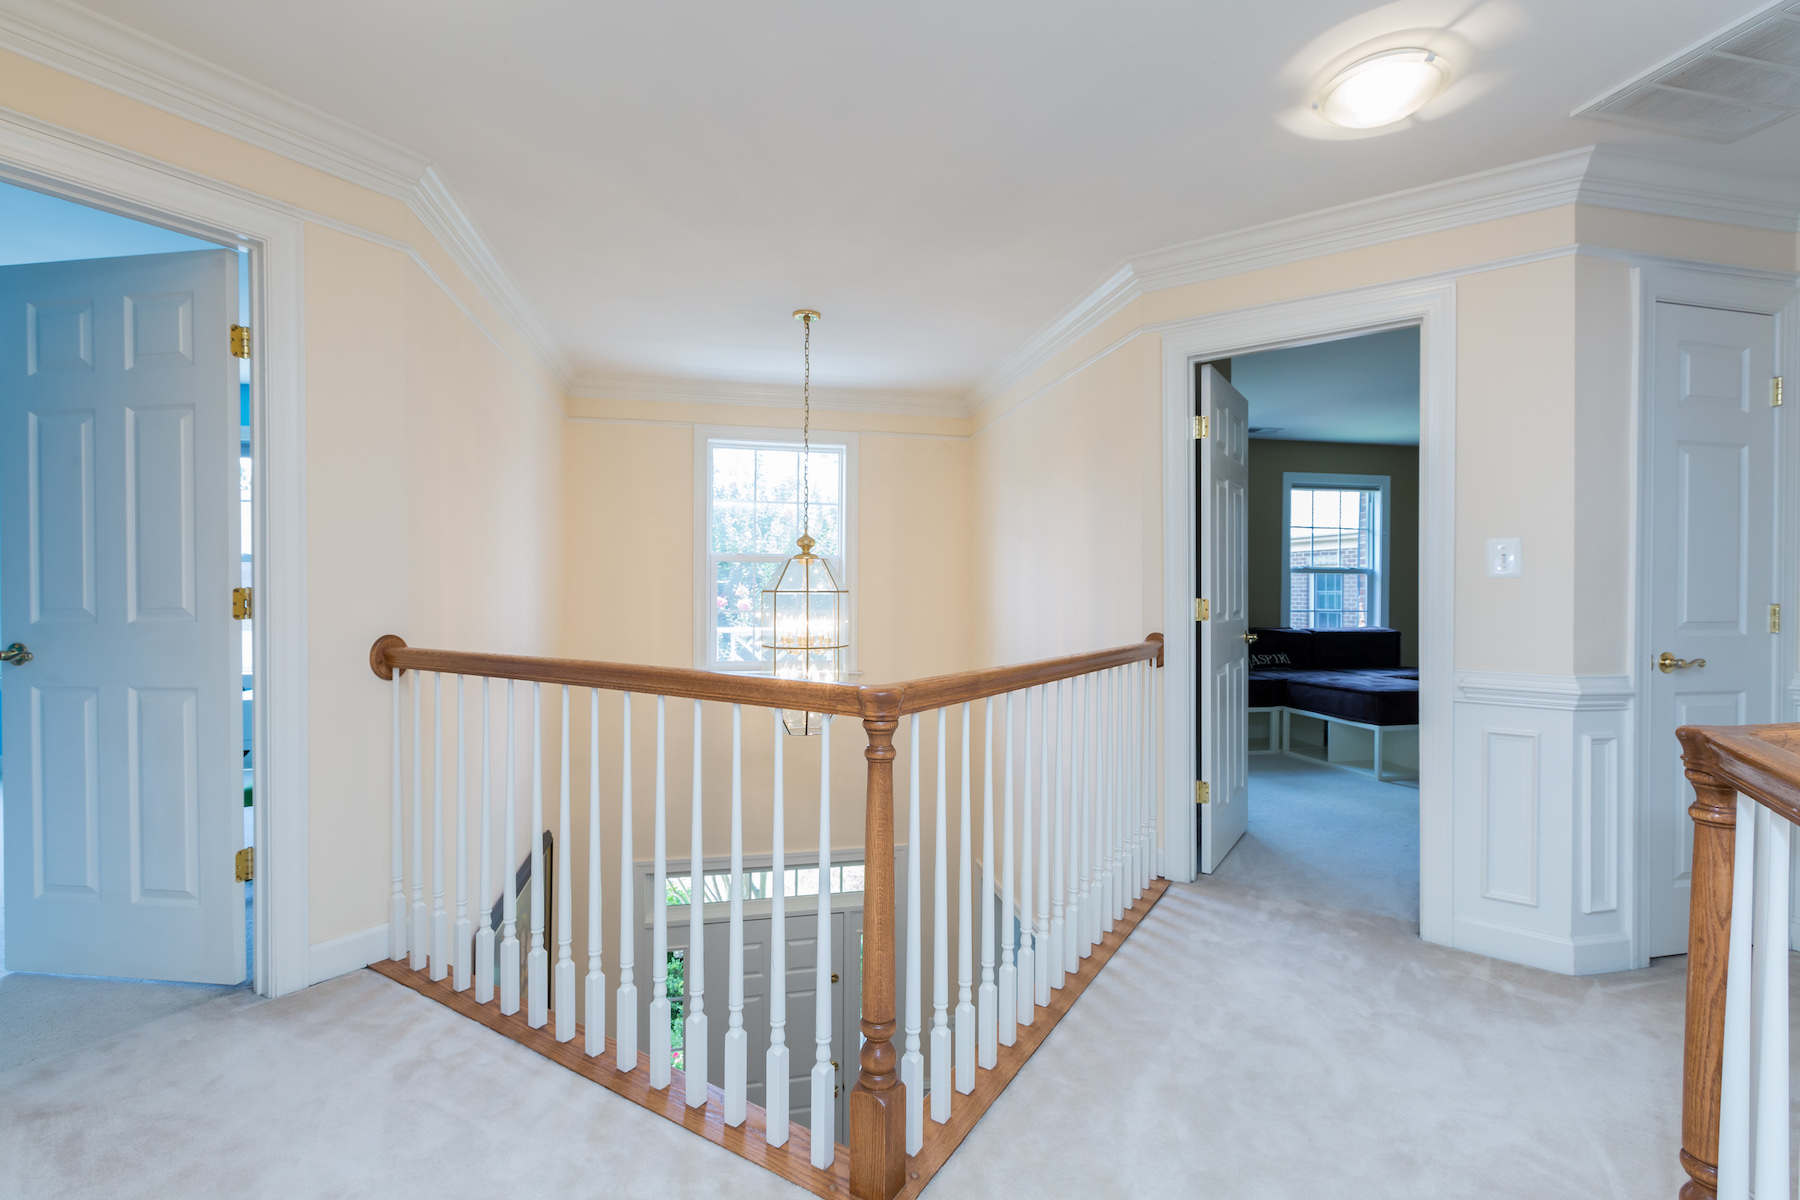 Additional photo for property listing at Falls Church 6654 Avignon Blvd Falls Church, Virginia 22043 Estados Unidos